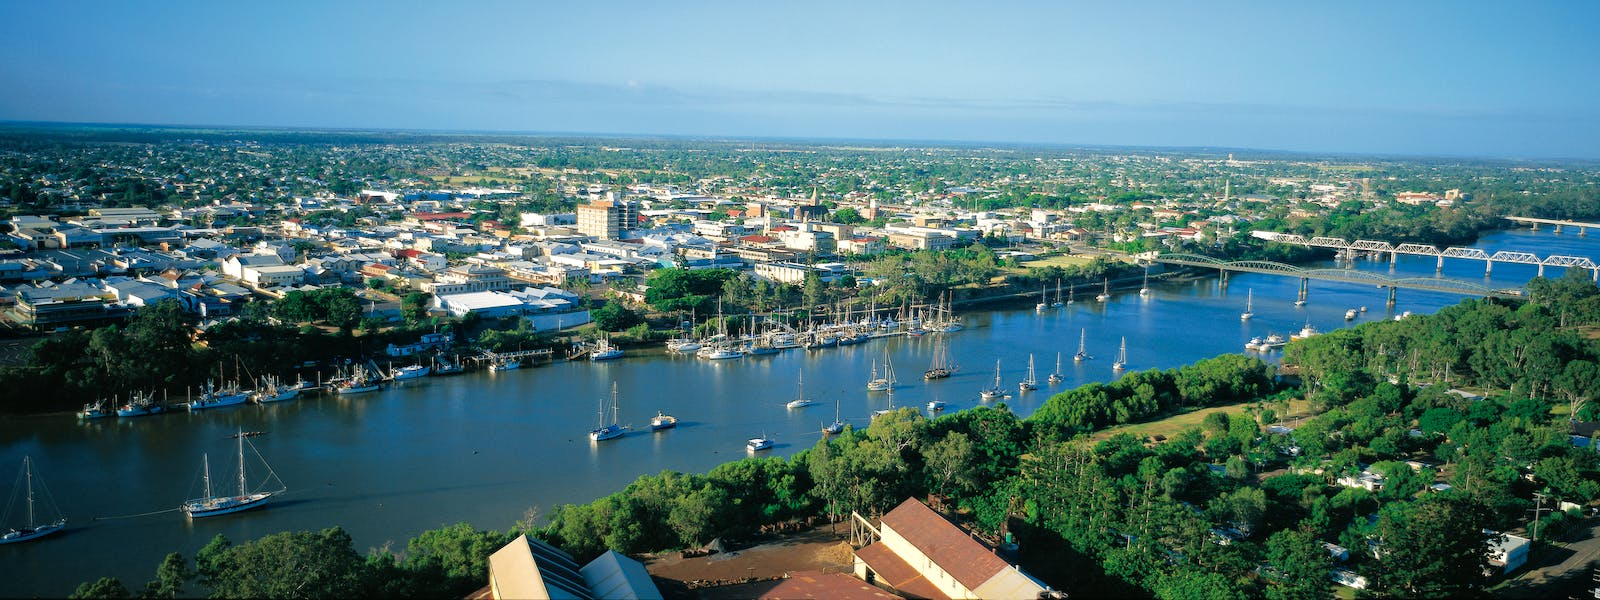 Aerial view of Bundaberg